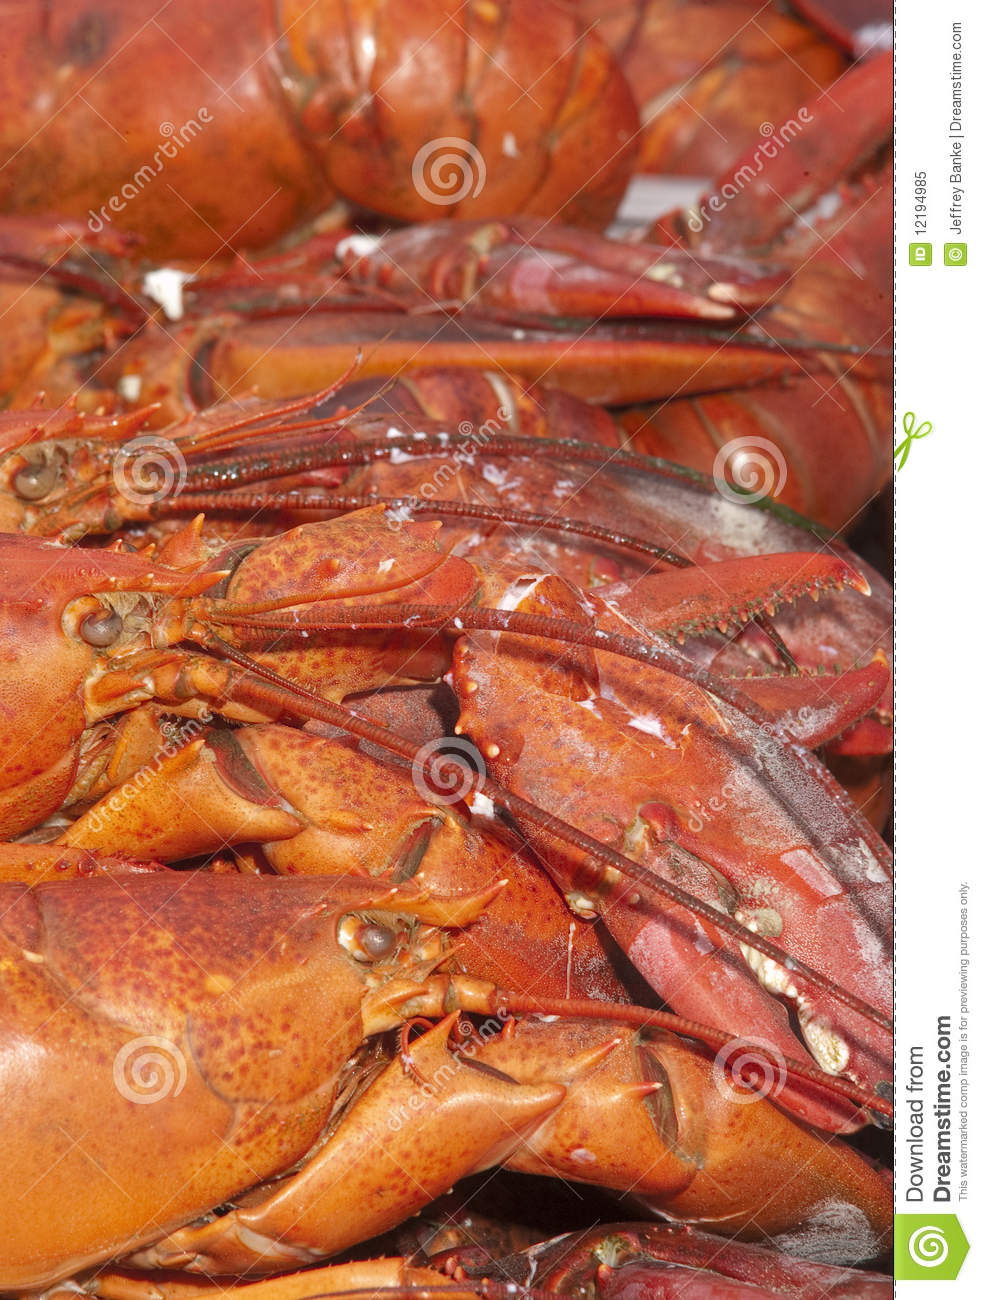 how to prepare fresh lobster